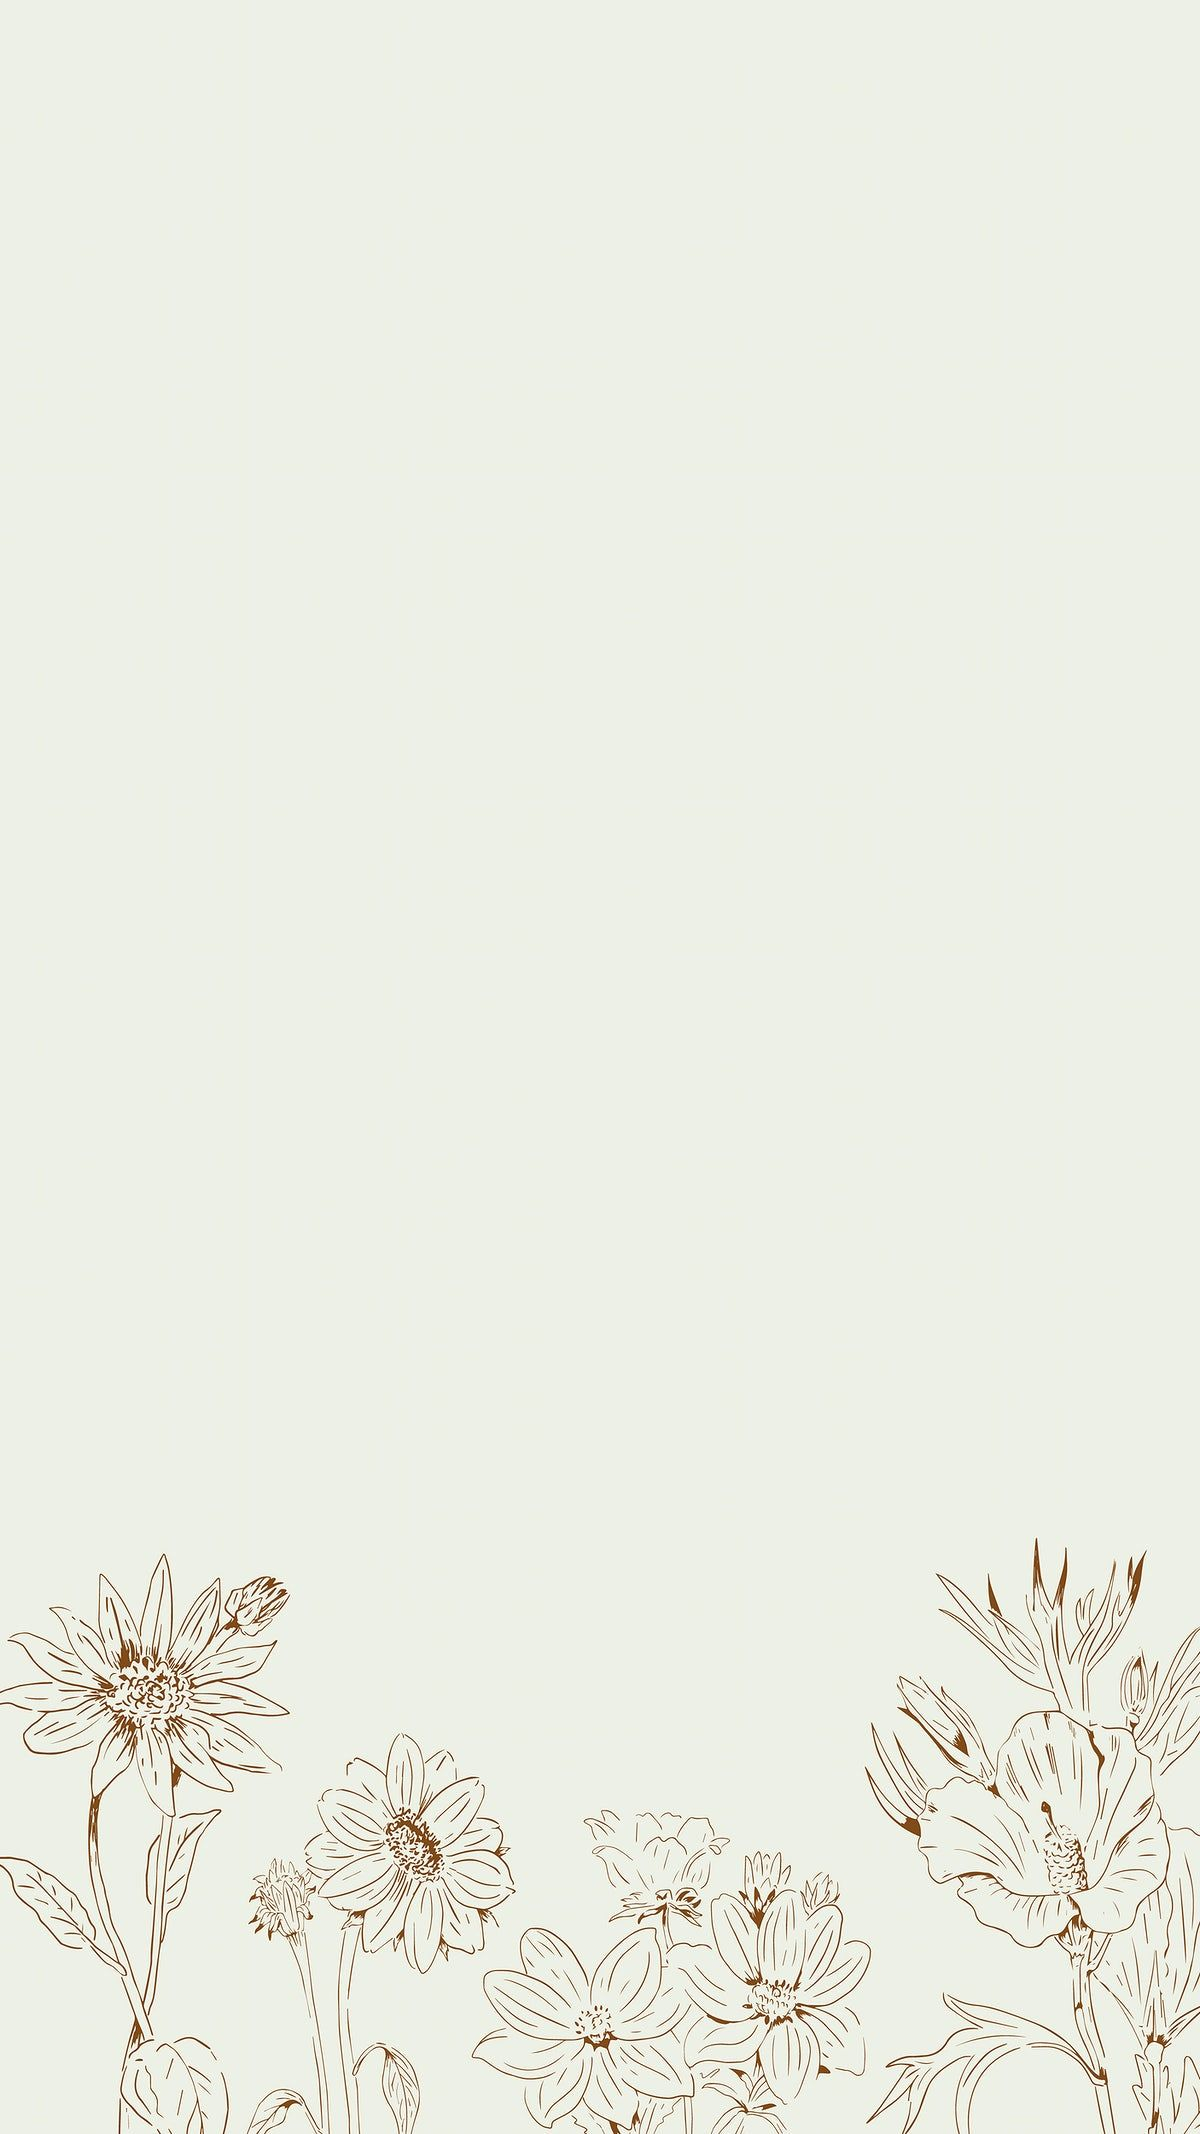 Download premium vector of Hand drawn wildflowers patterned mobile phone wallpaper vector by Te about tulip wallpaper, sunflower, wildflower illustration, wildflower pattern, and instagram story 2042039